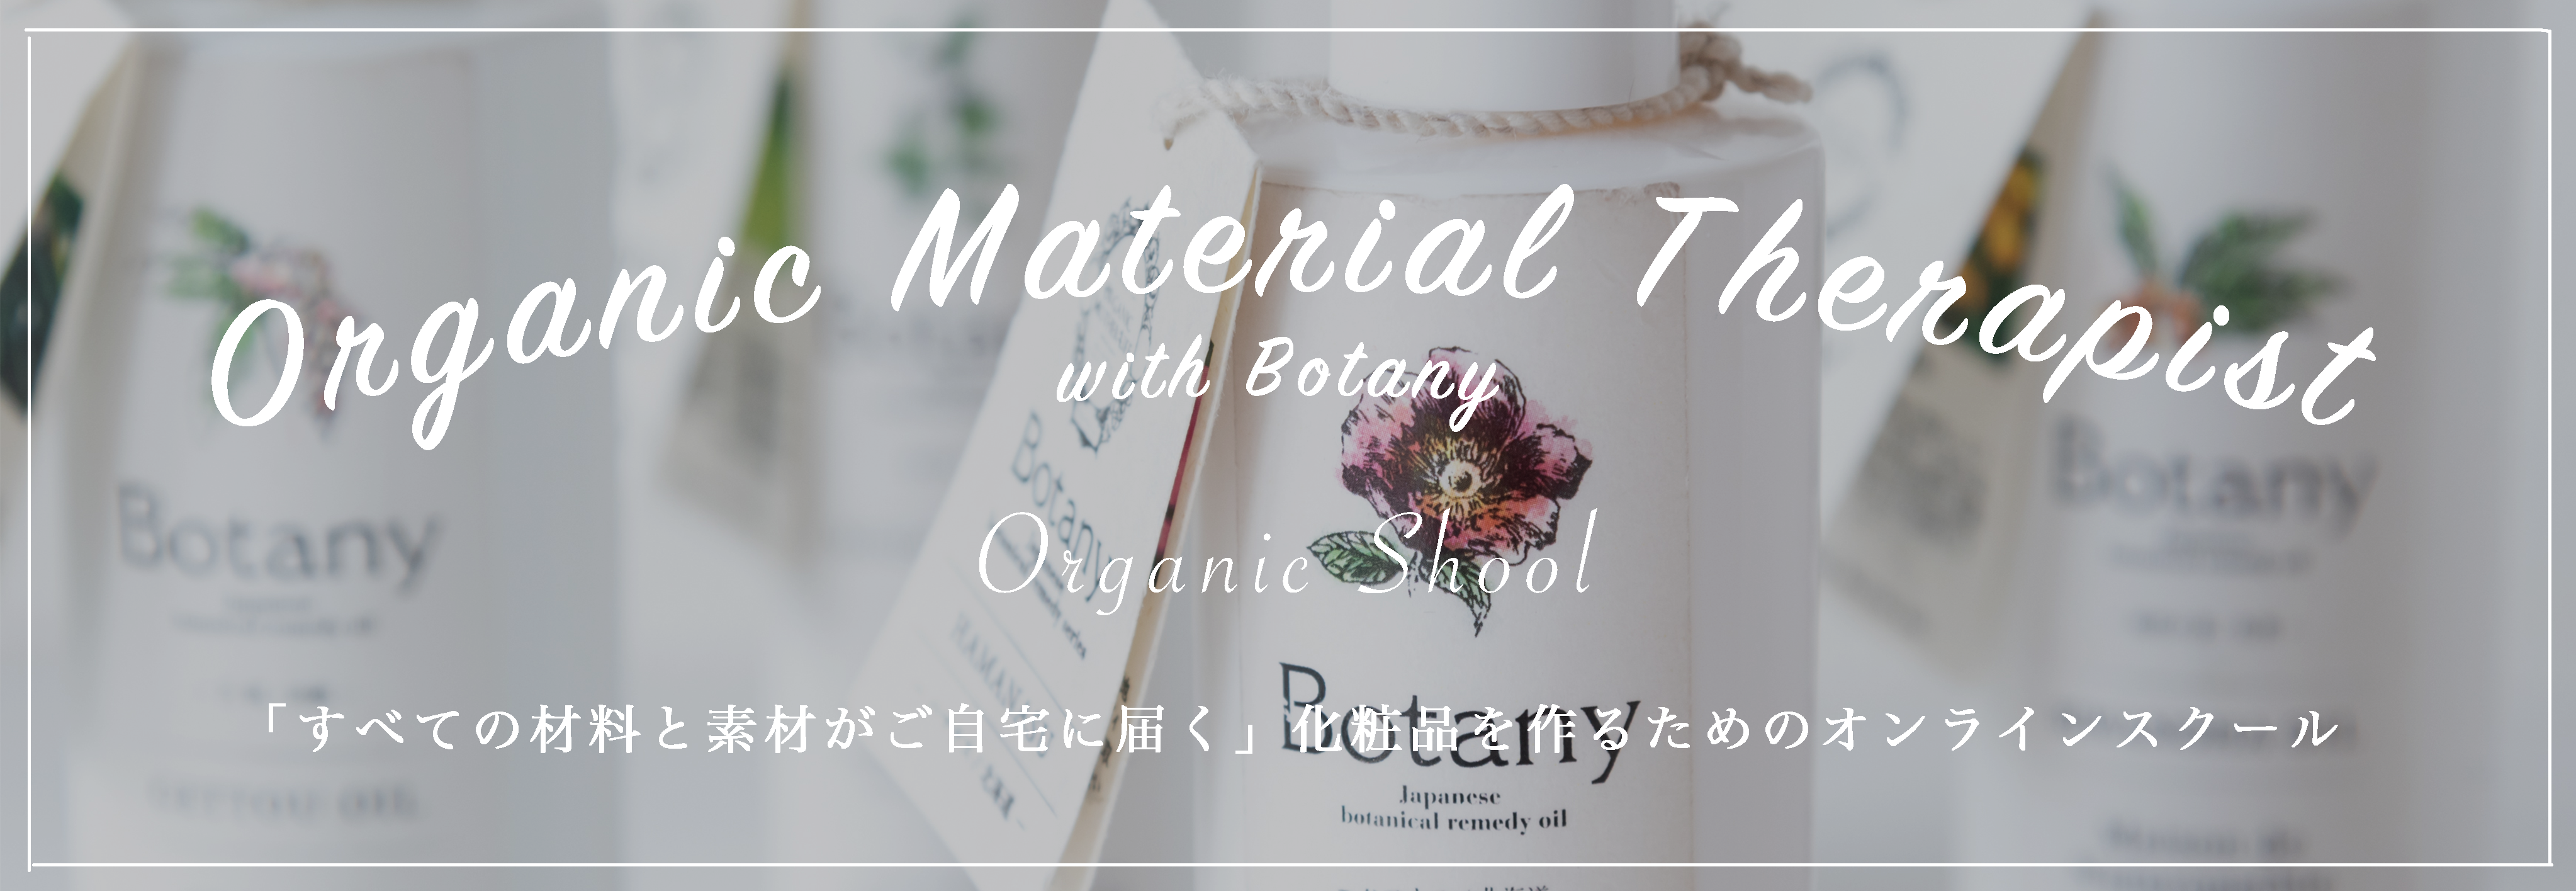 Organic Material Therapist with Botany